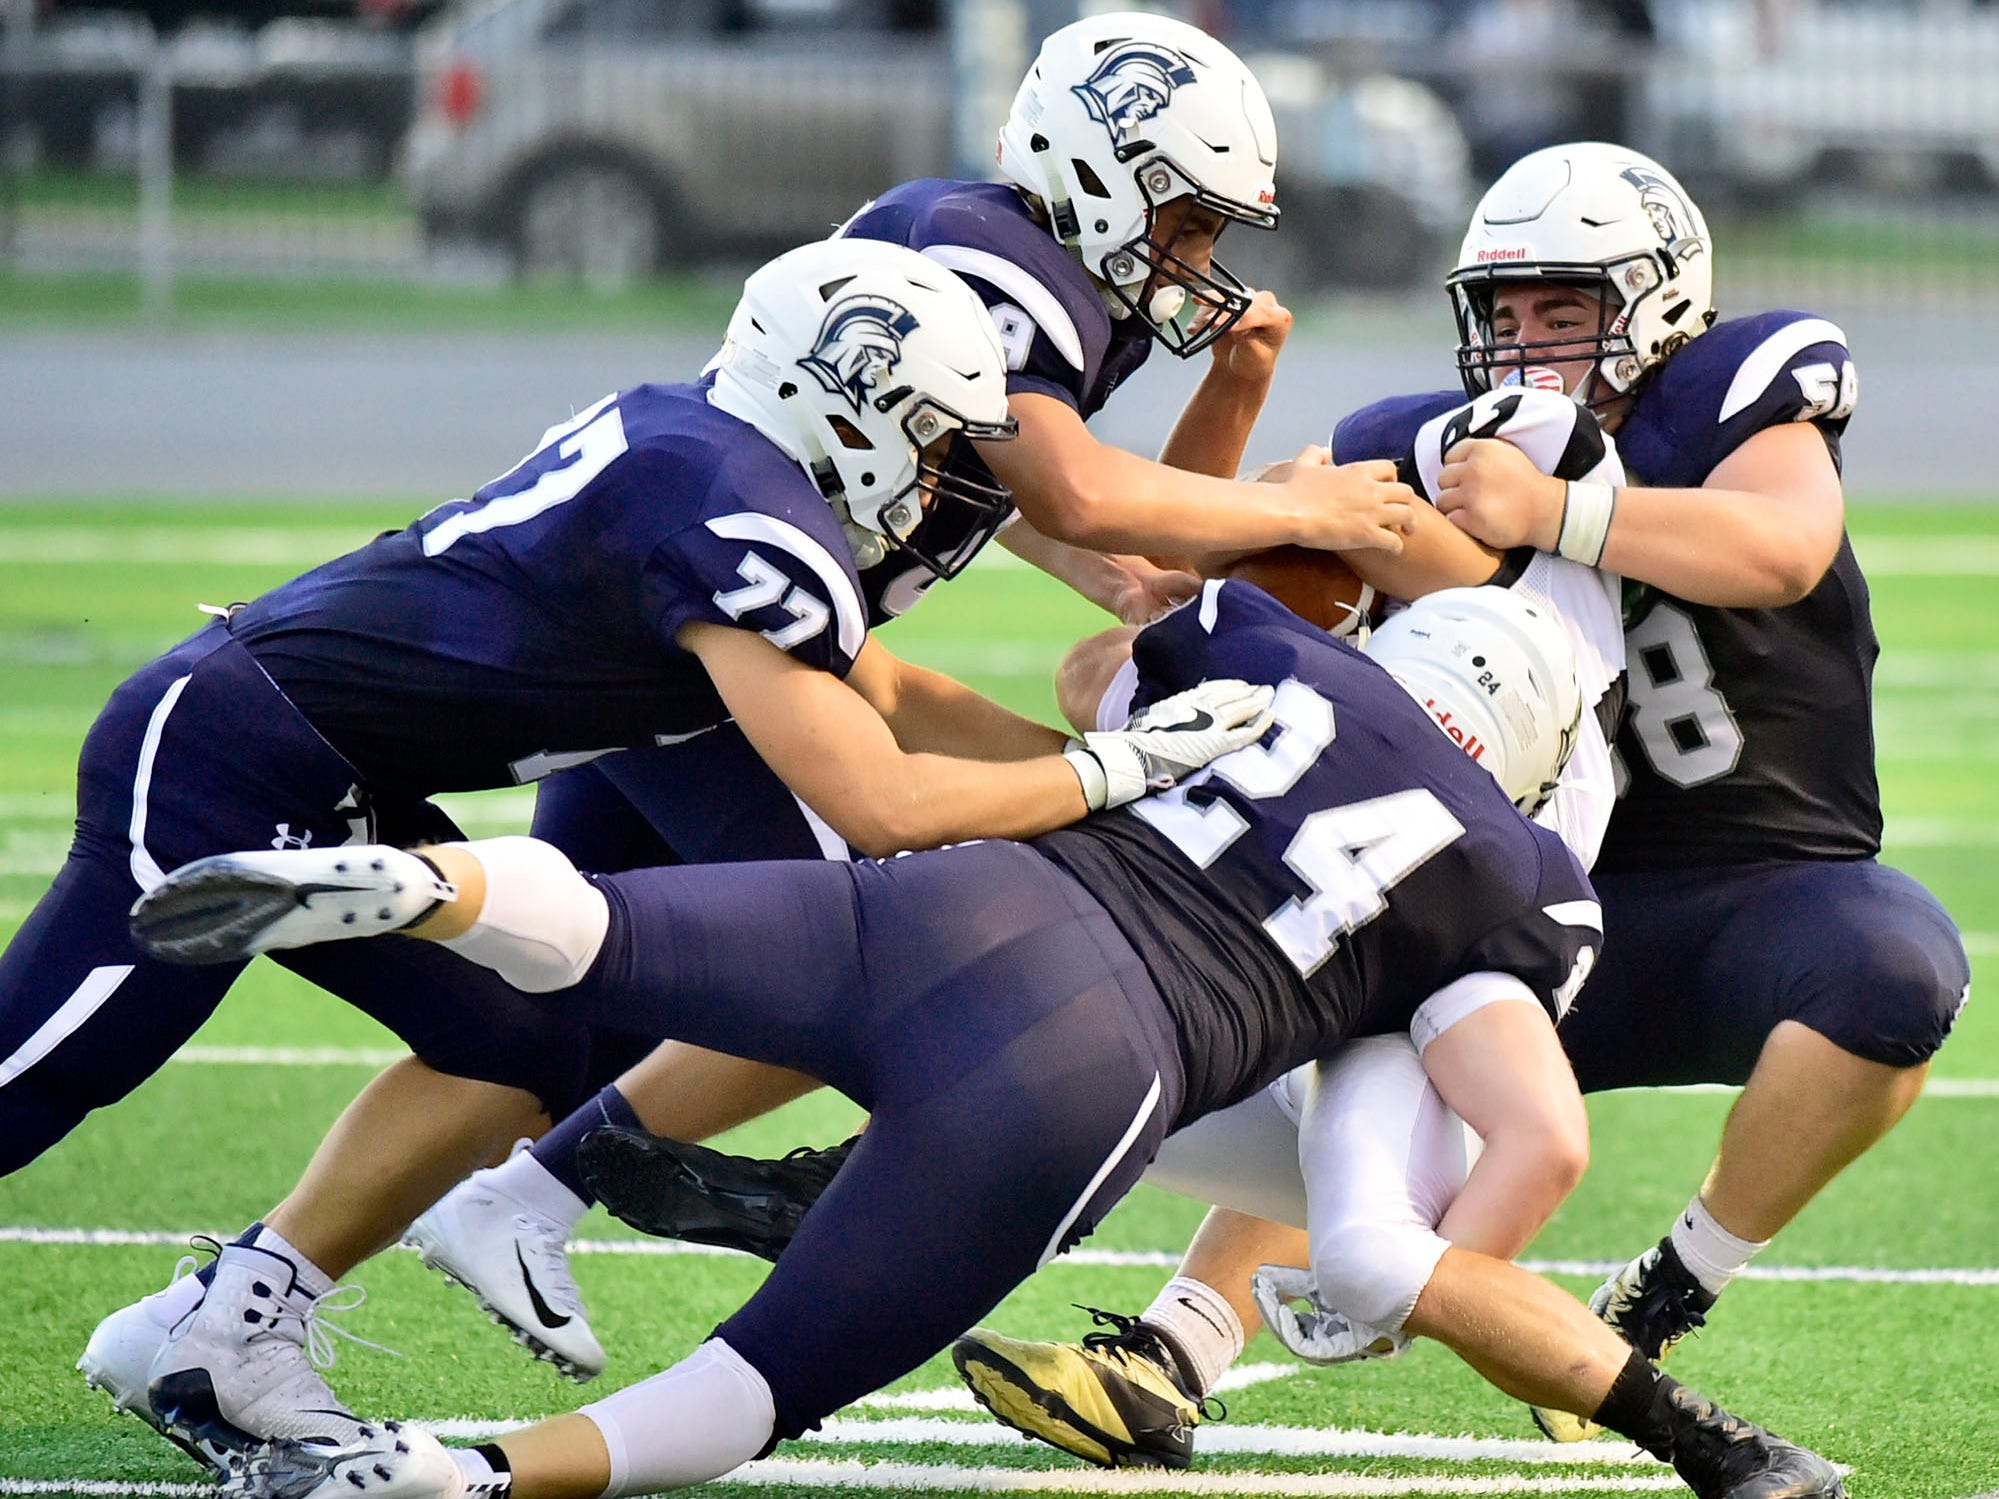 Chambersburg's swarming defense is a big part of the Trojans victories. Chambersburg routed South Western 51-26 in football on Friday, Aug. 31, 2018.